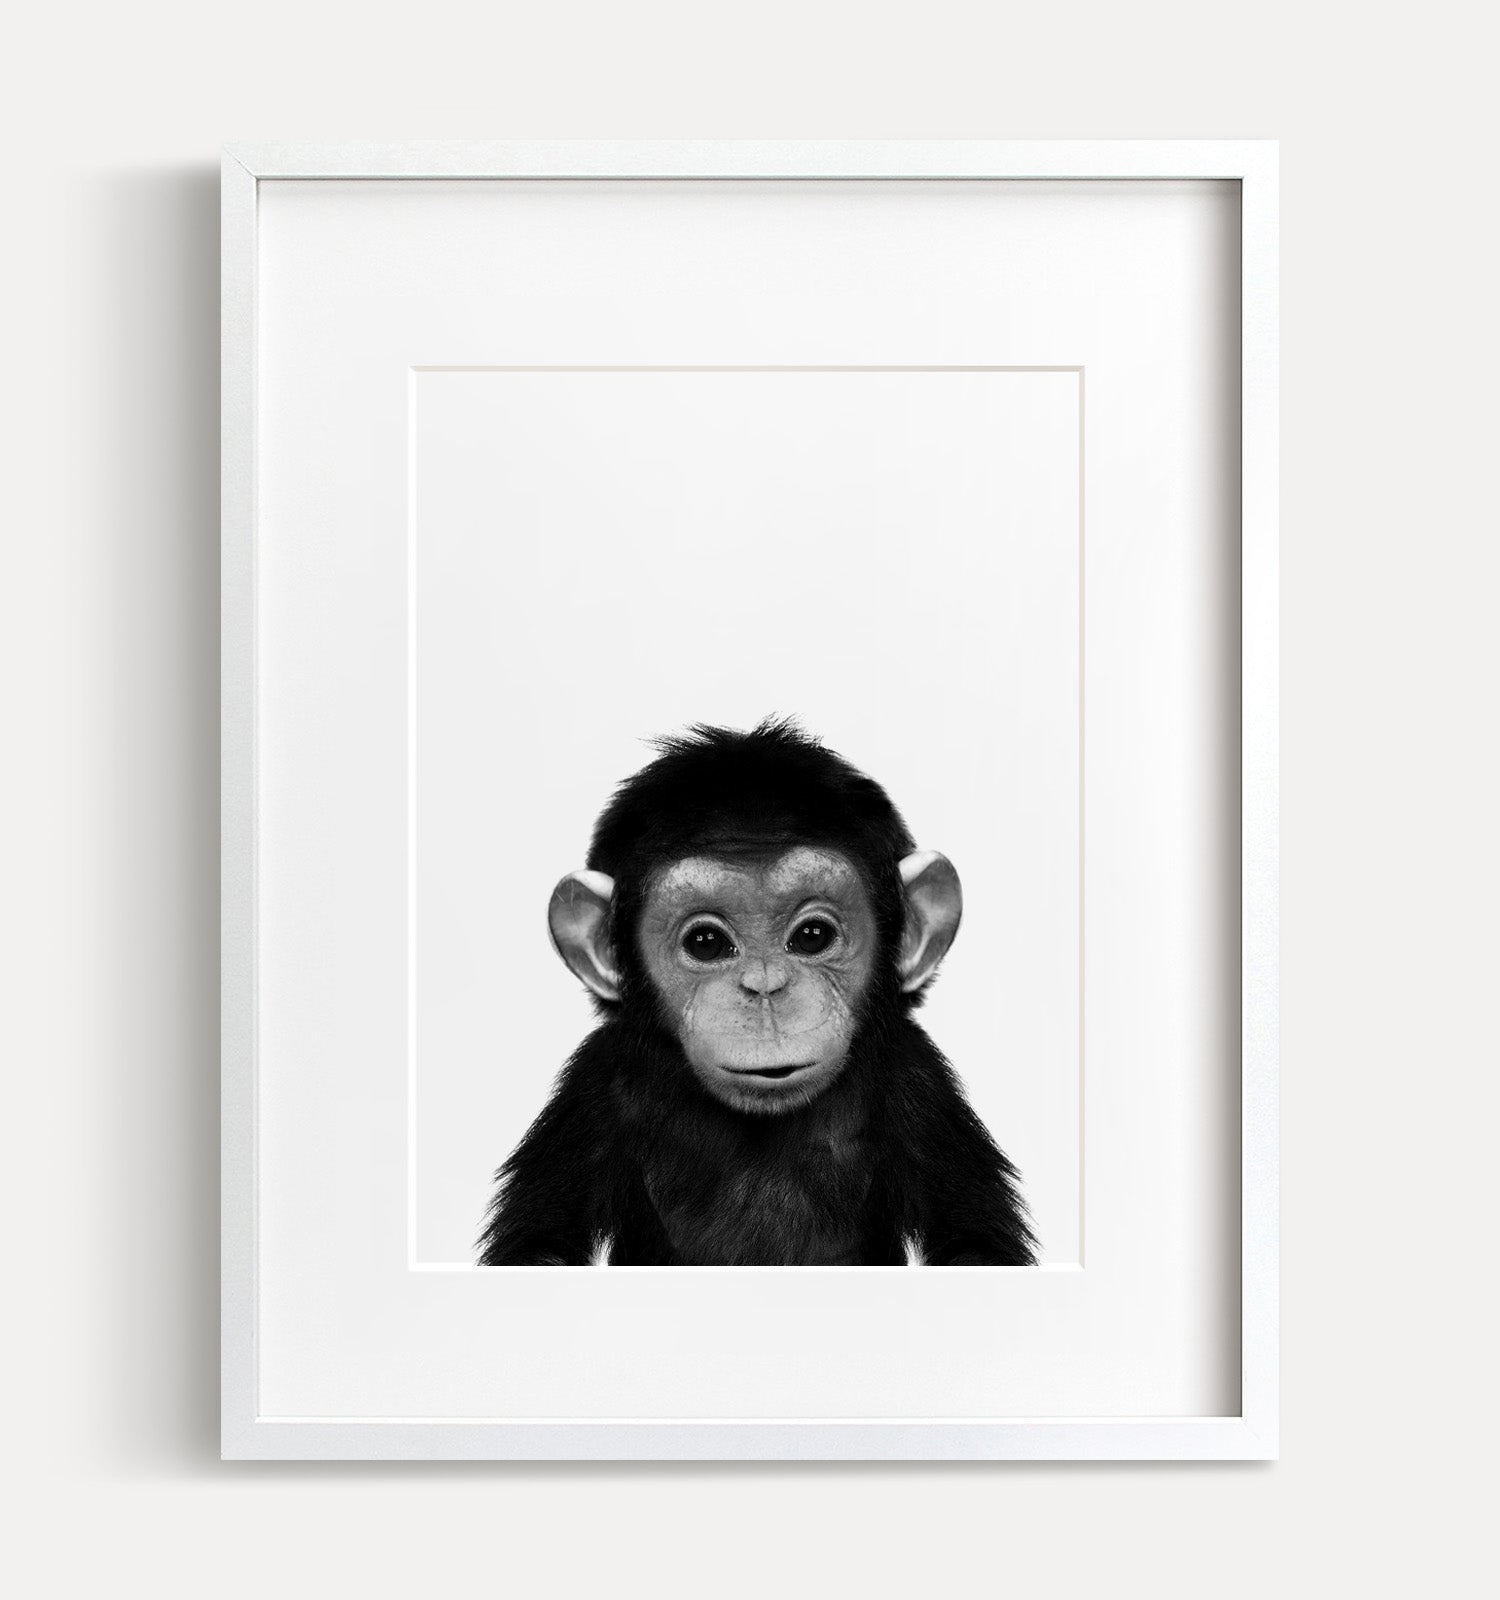 Baby Chimpanzee Printable Art - Black and White